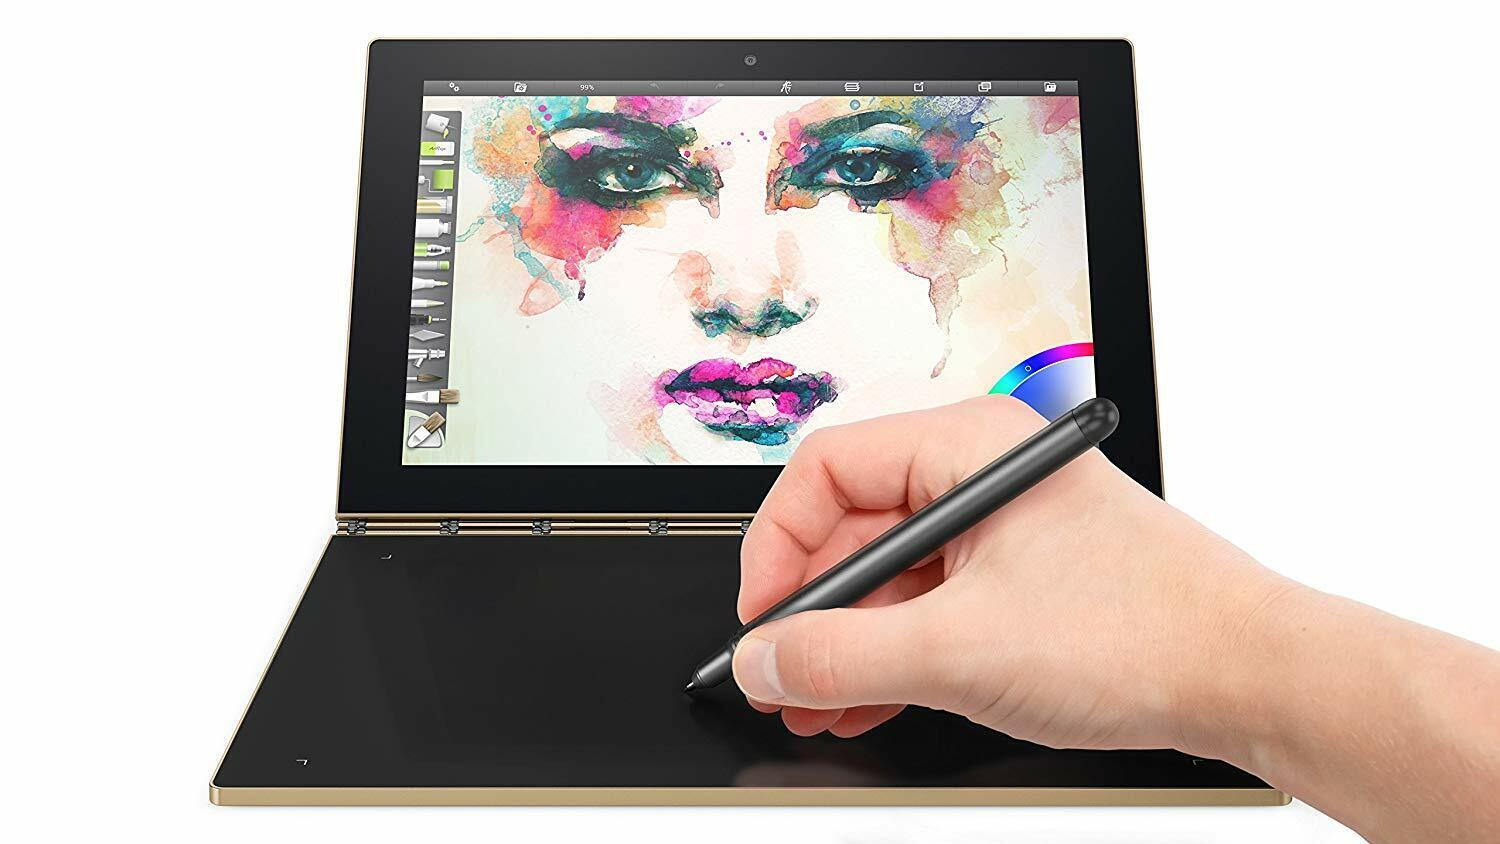 lenovo-yoga-book-10-1-2-in-1-drawing-tablet-intel-quad-core-64gb-ssd-gold